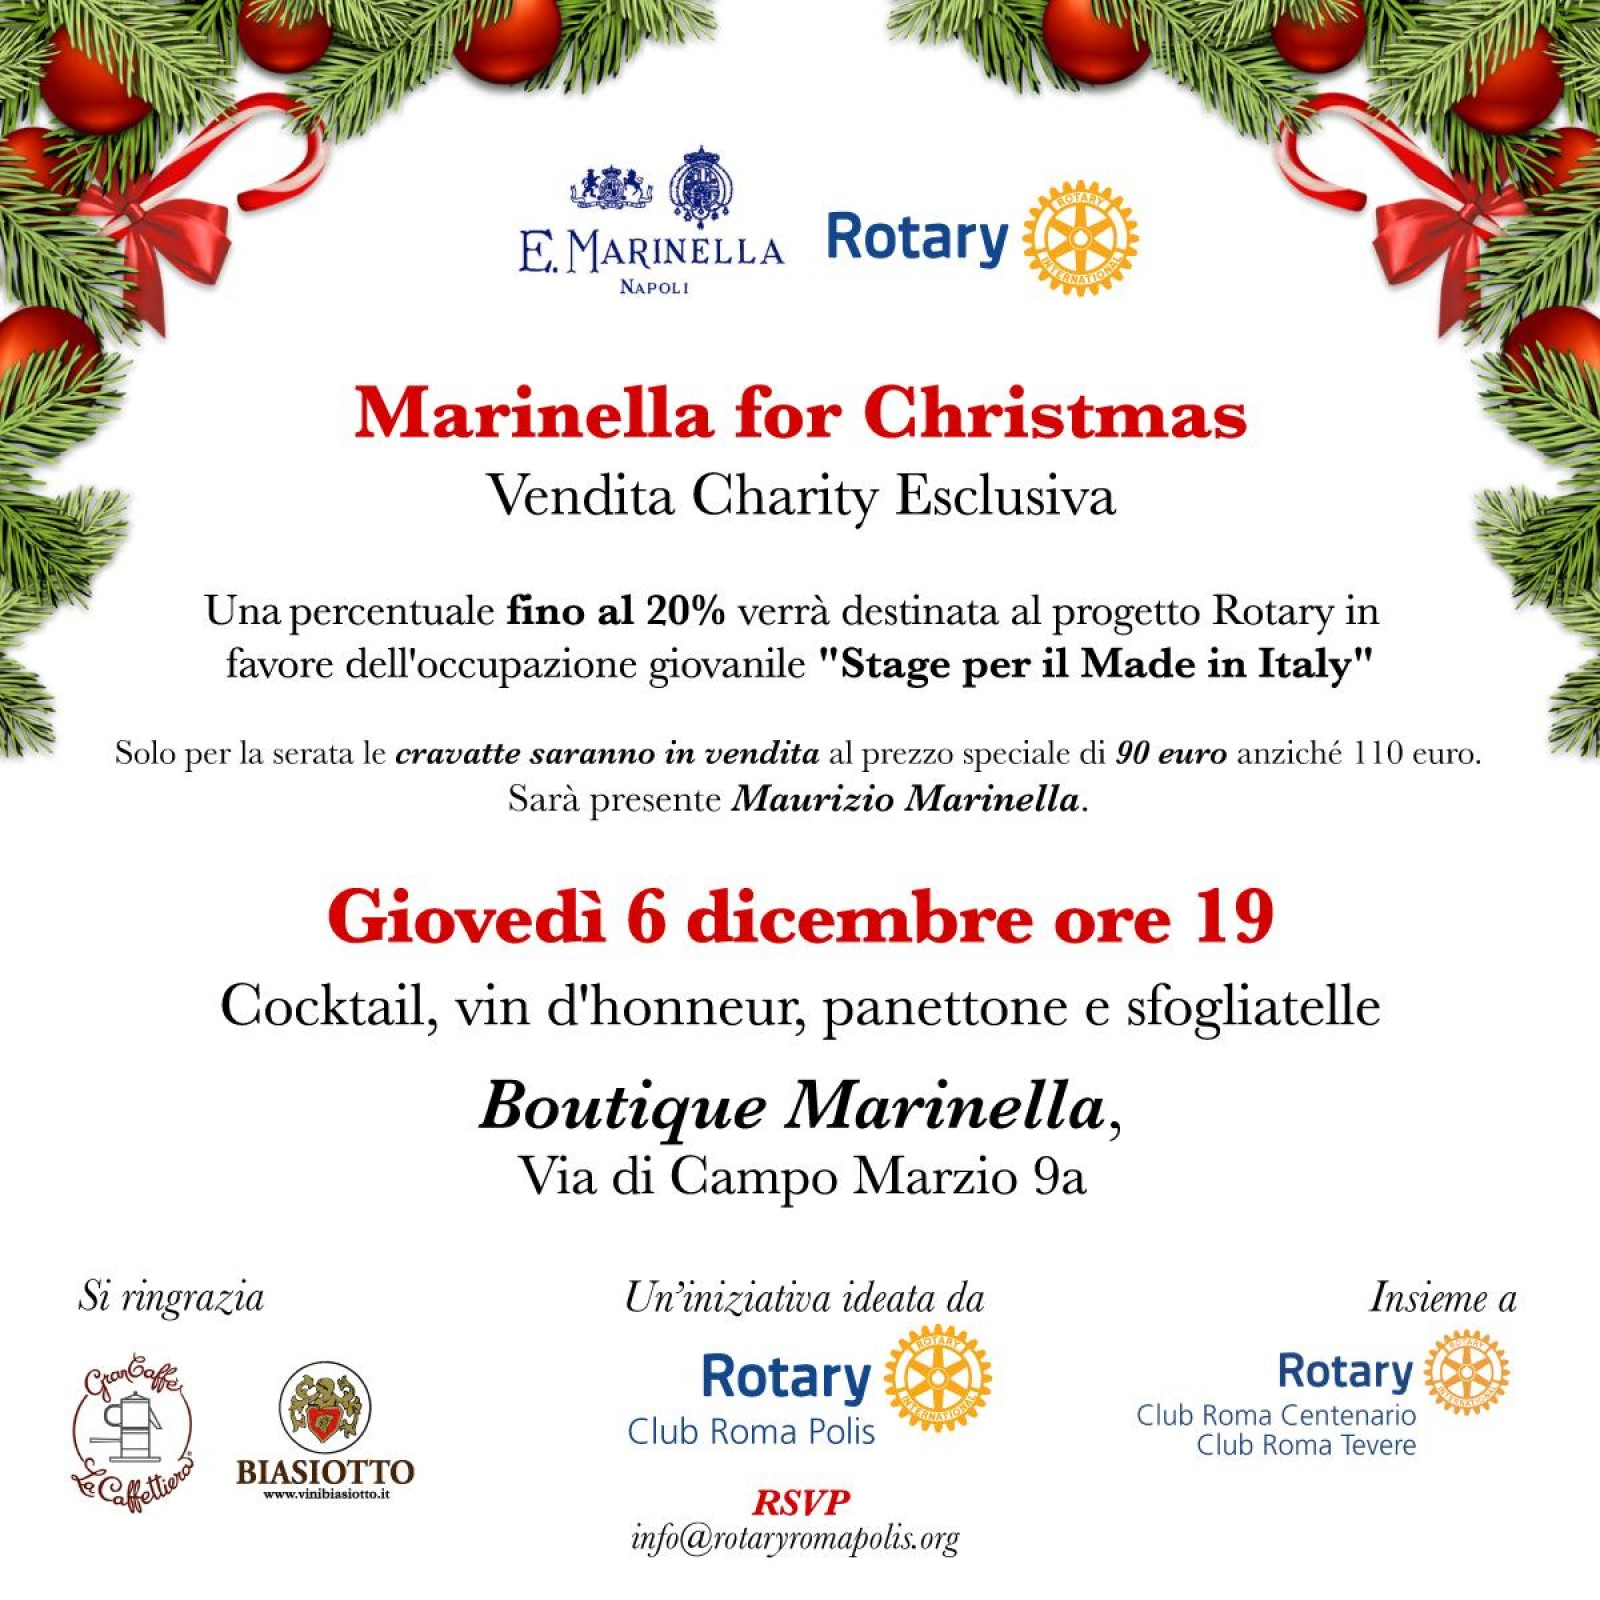 Gallery - Marinella for Christmas